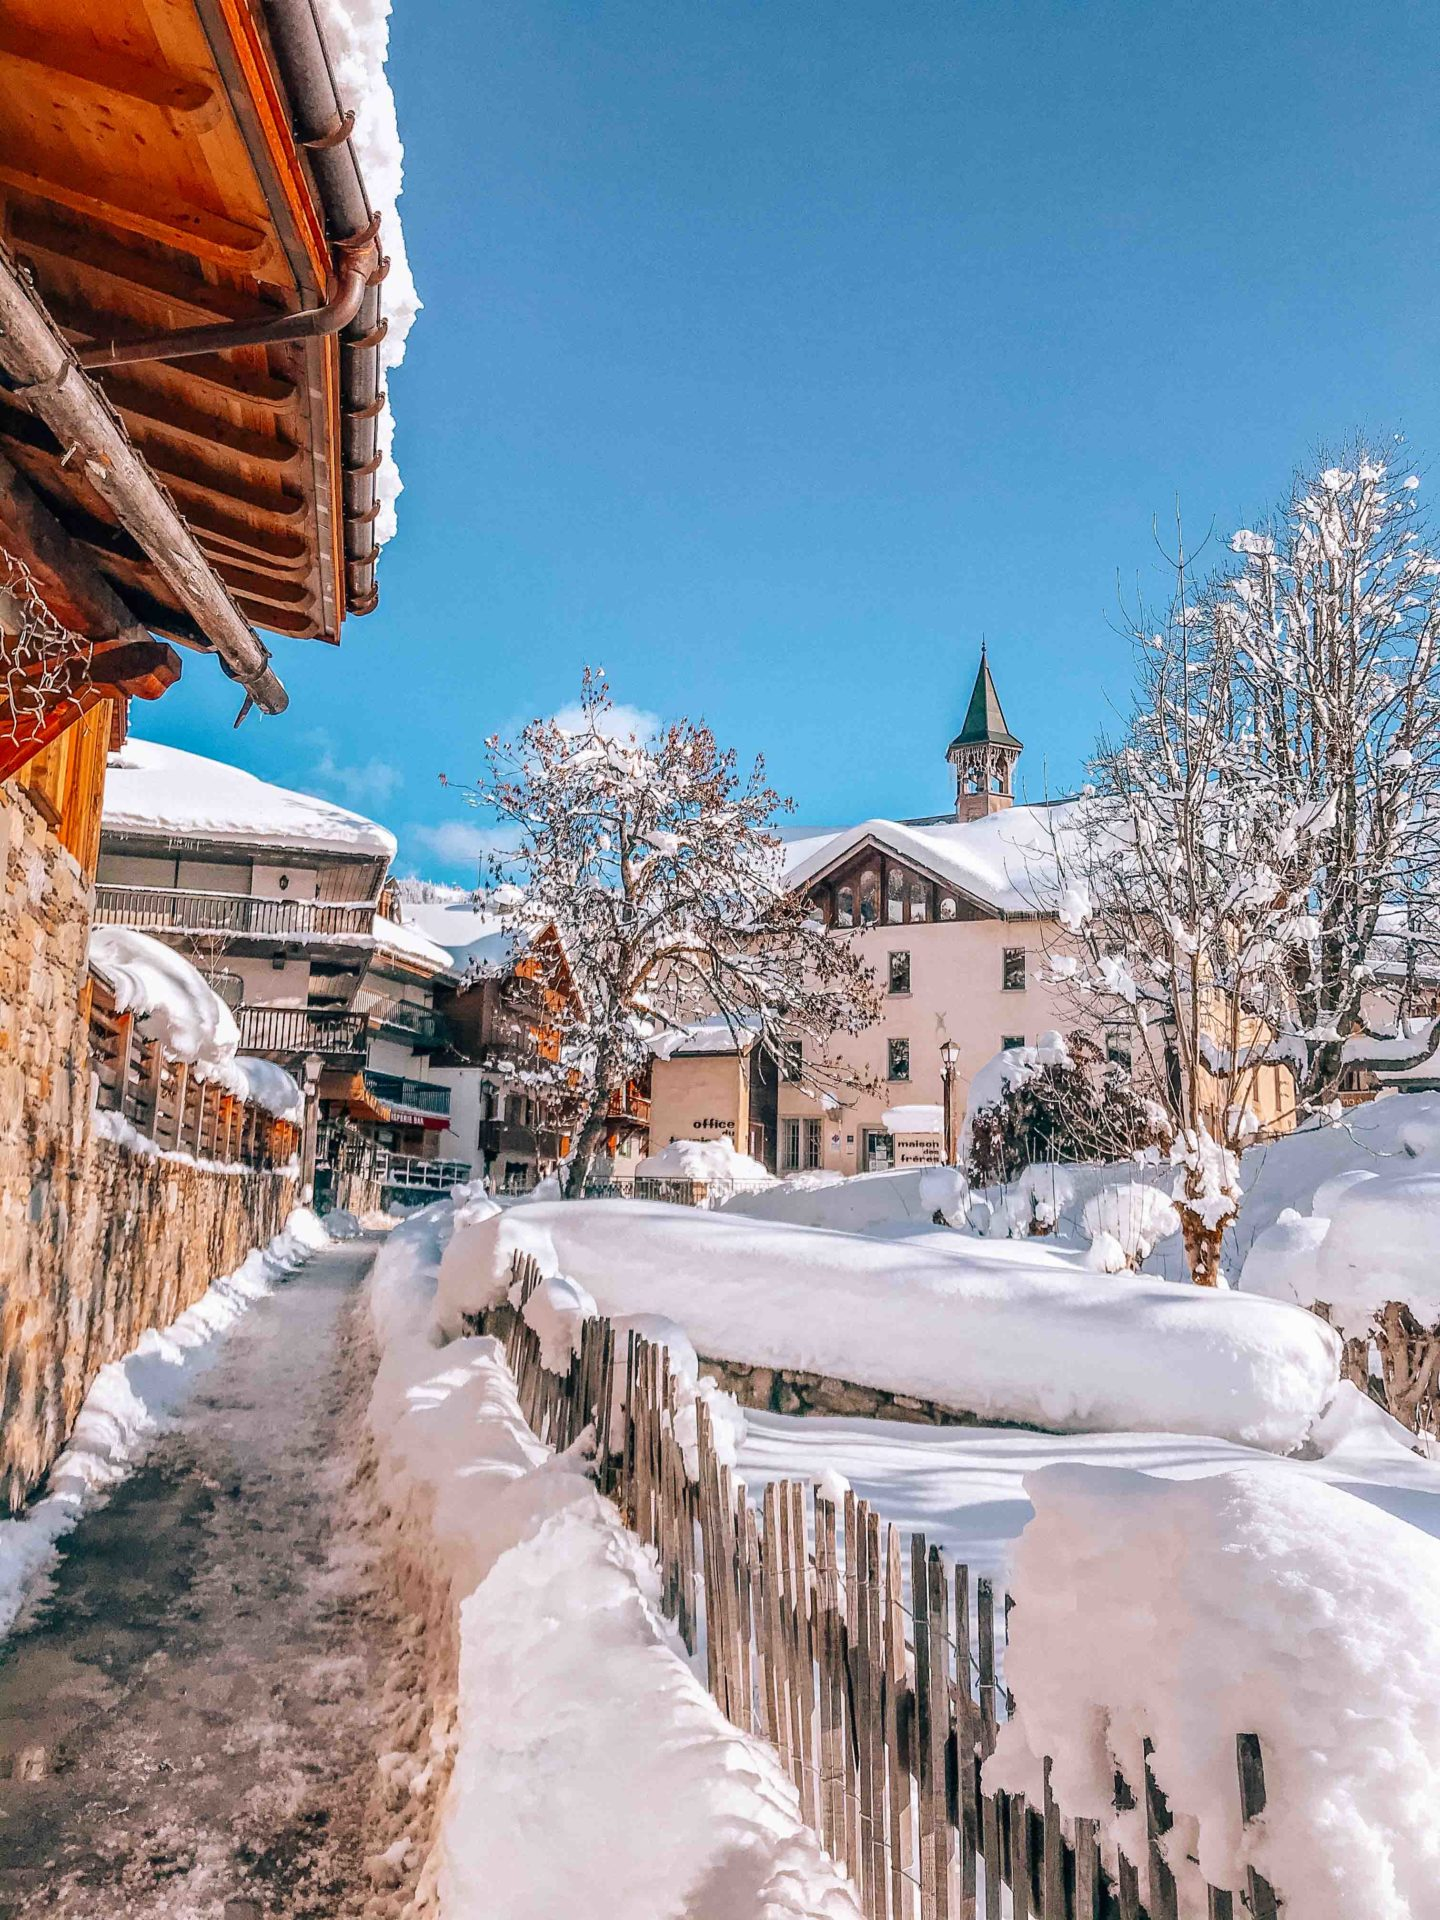 Picturesque streets of Megeve french village